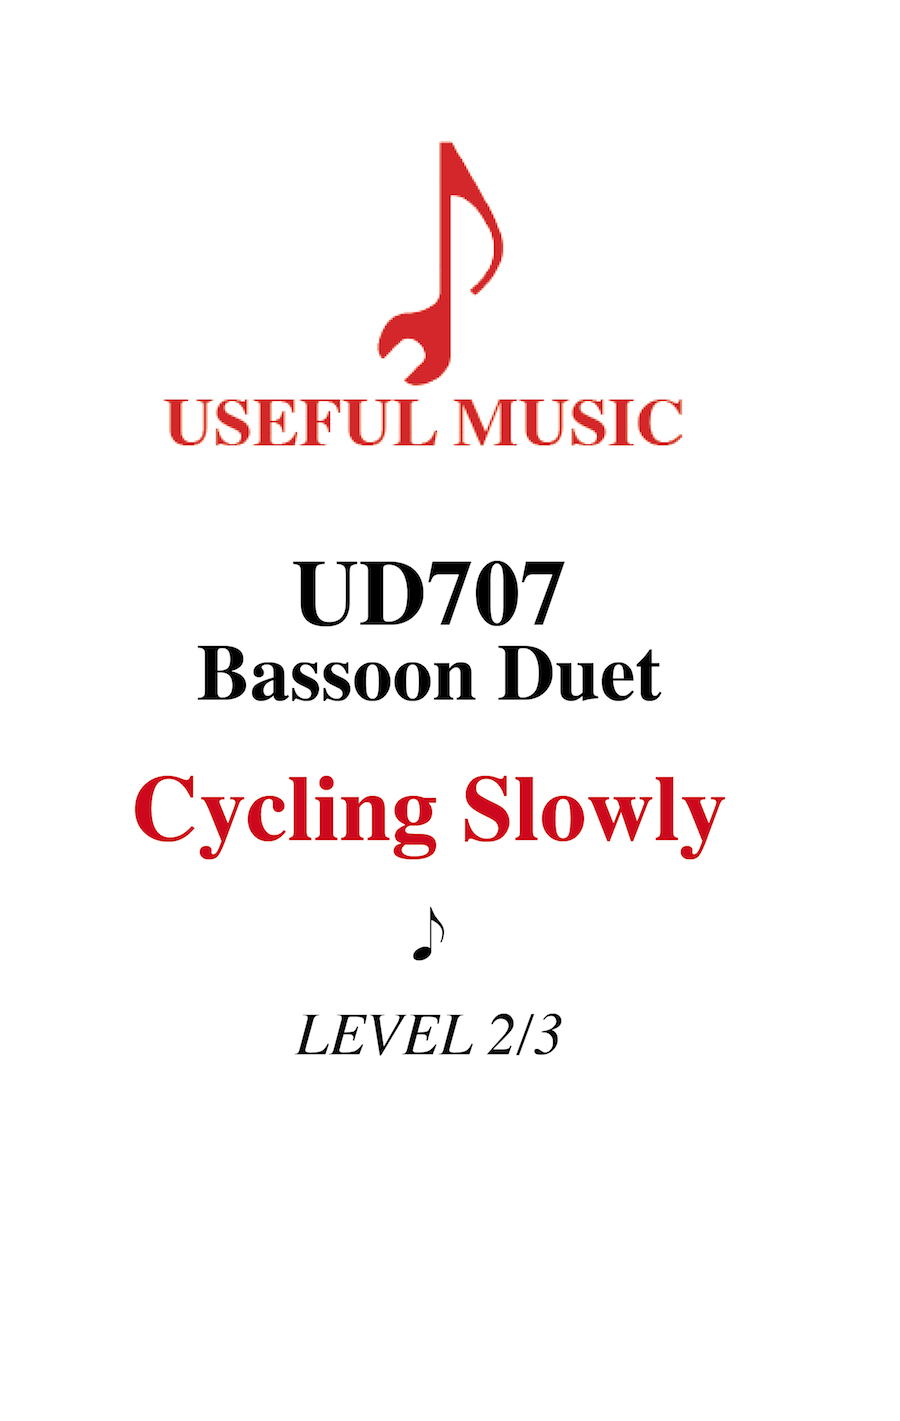 Cycling Slowly - bassoon duet